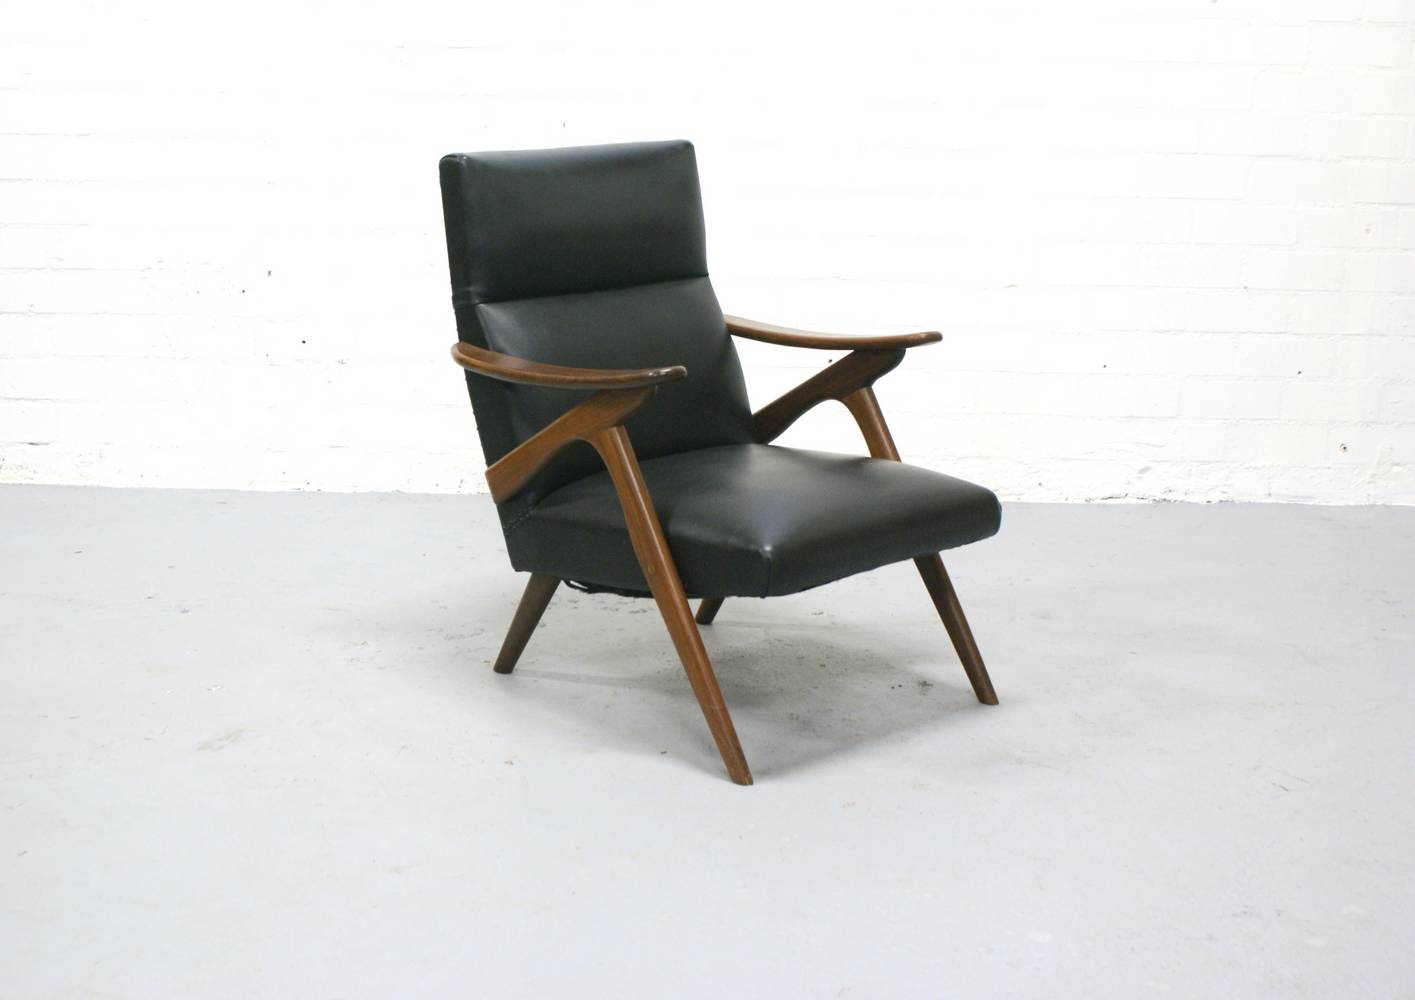 Pin ceramics on pinterest - Fauteuil vintage cuir ...